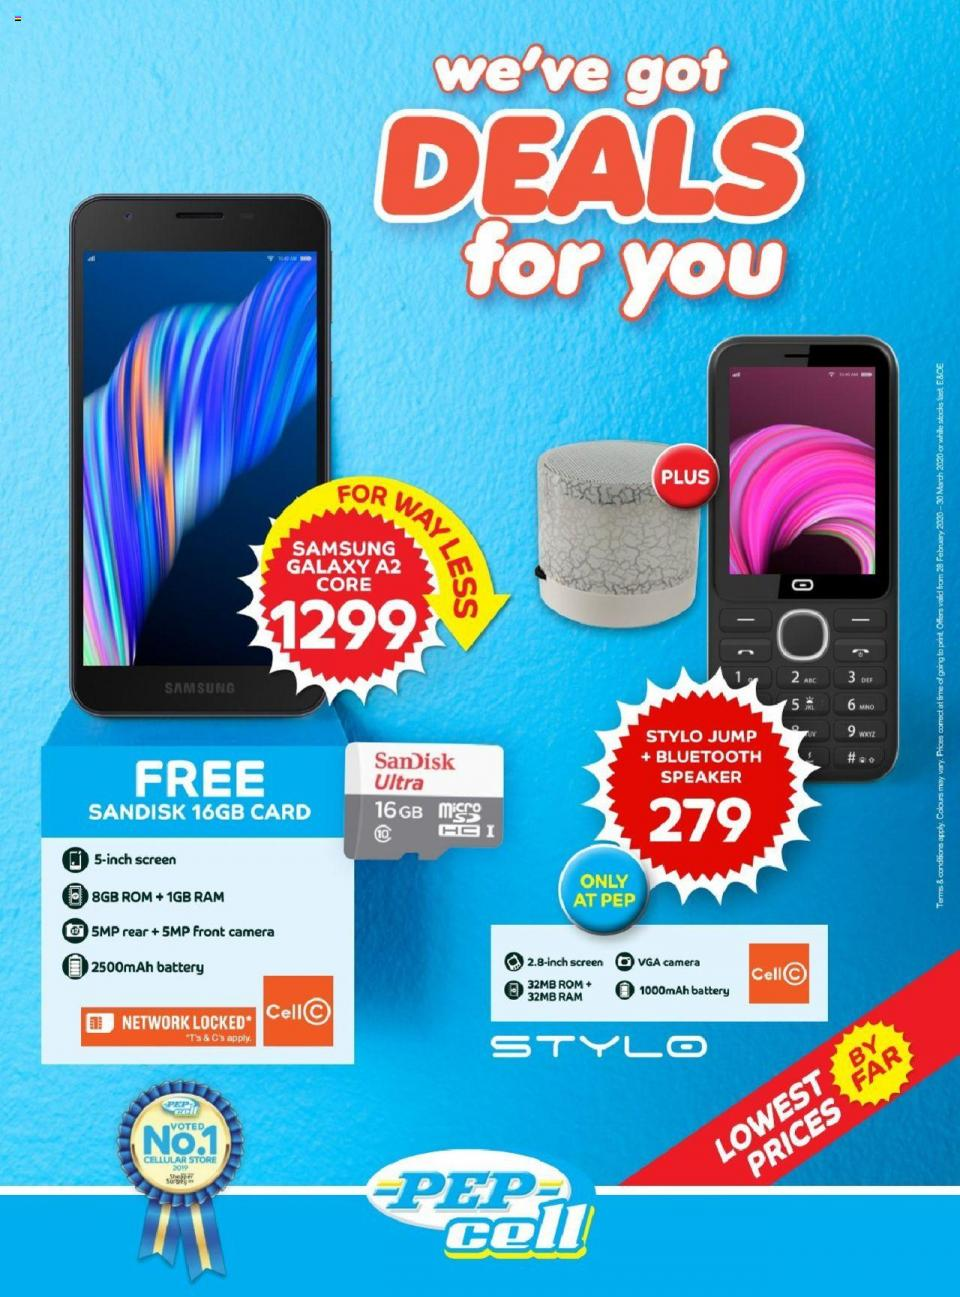 pep catalogue cell specials 28 february 2020